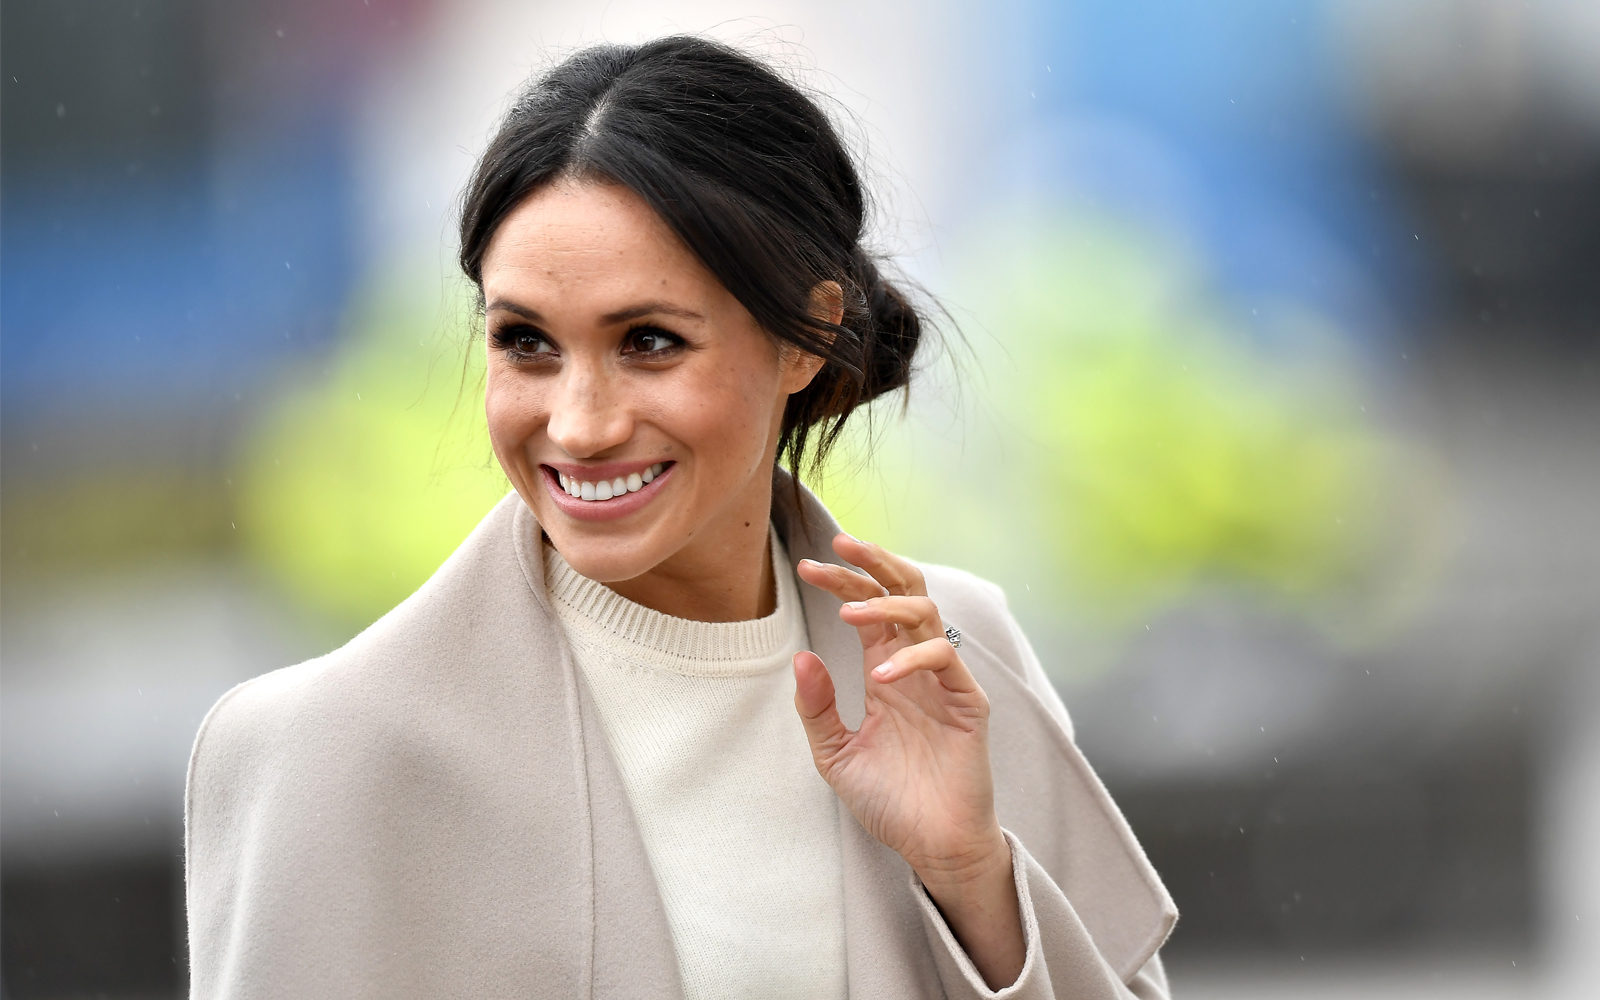 Meghan Markle's Spring Sweater Is the Perfect Transitional Piece to Pack